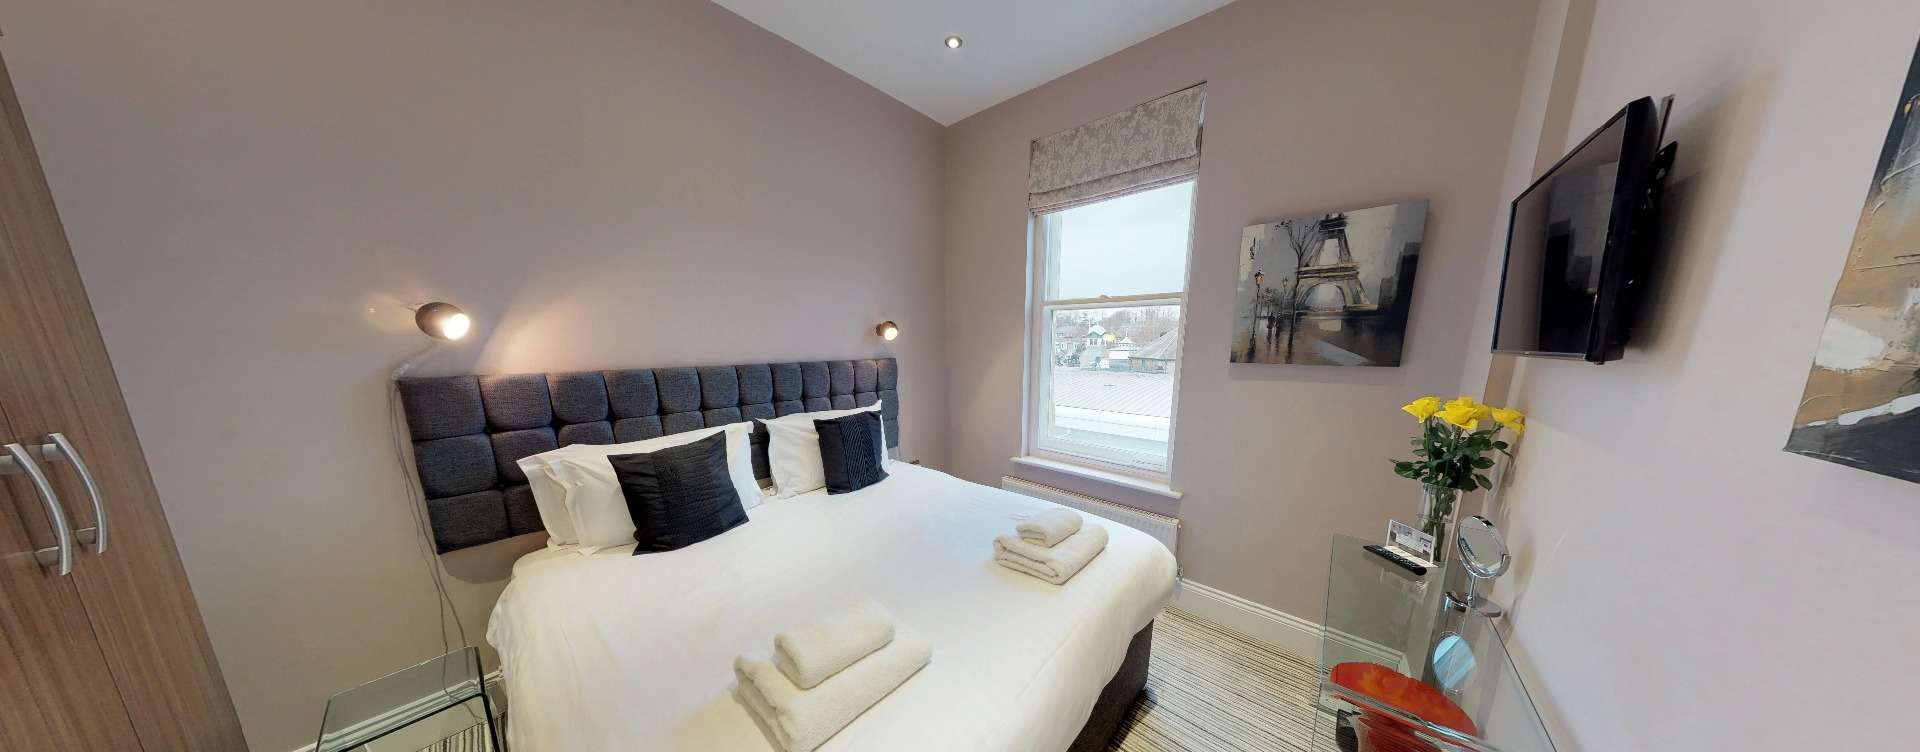 Harrogate Lifestyle Serviced Apartments